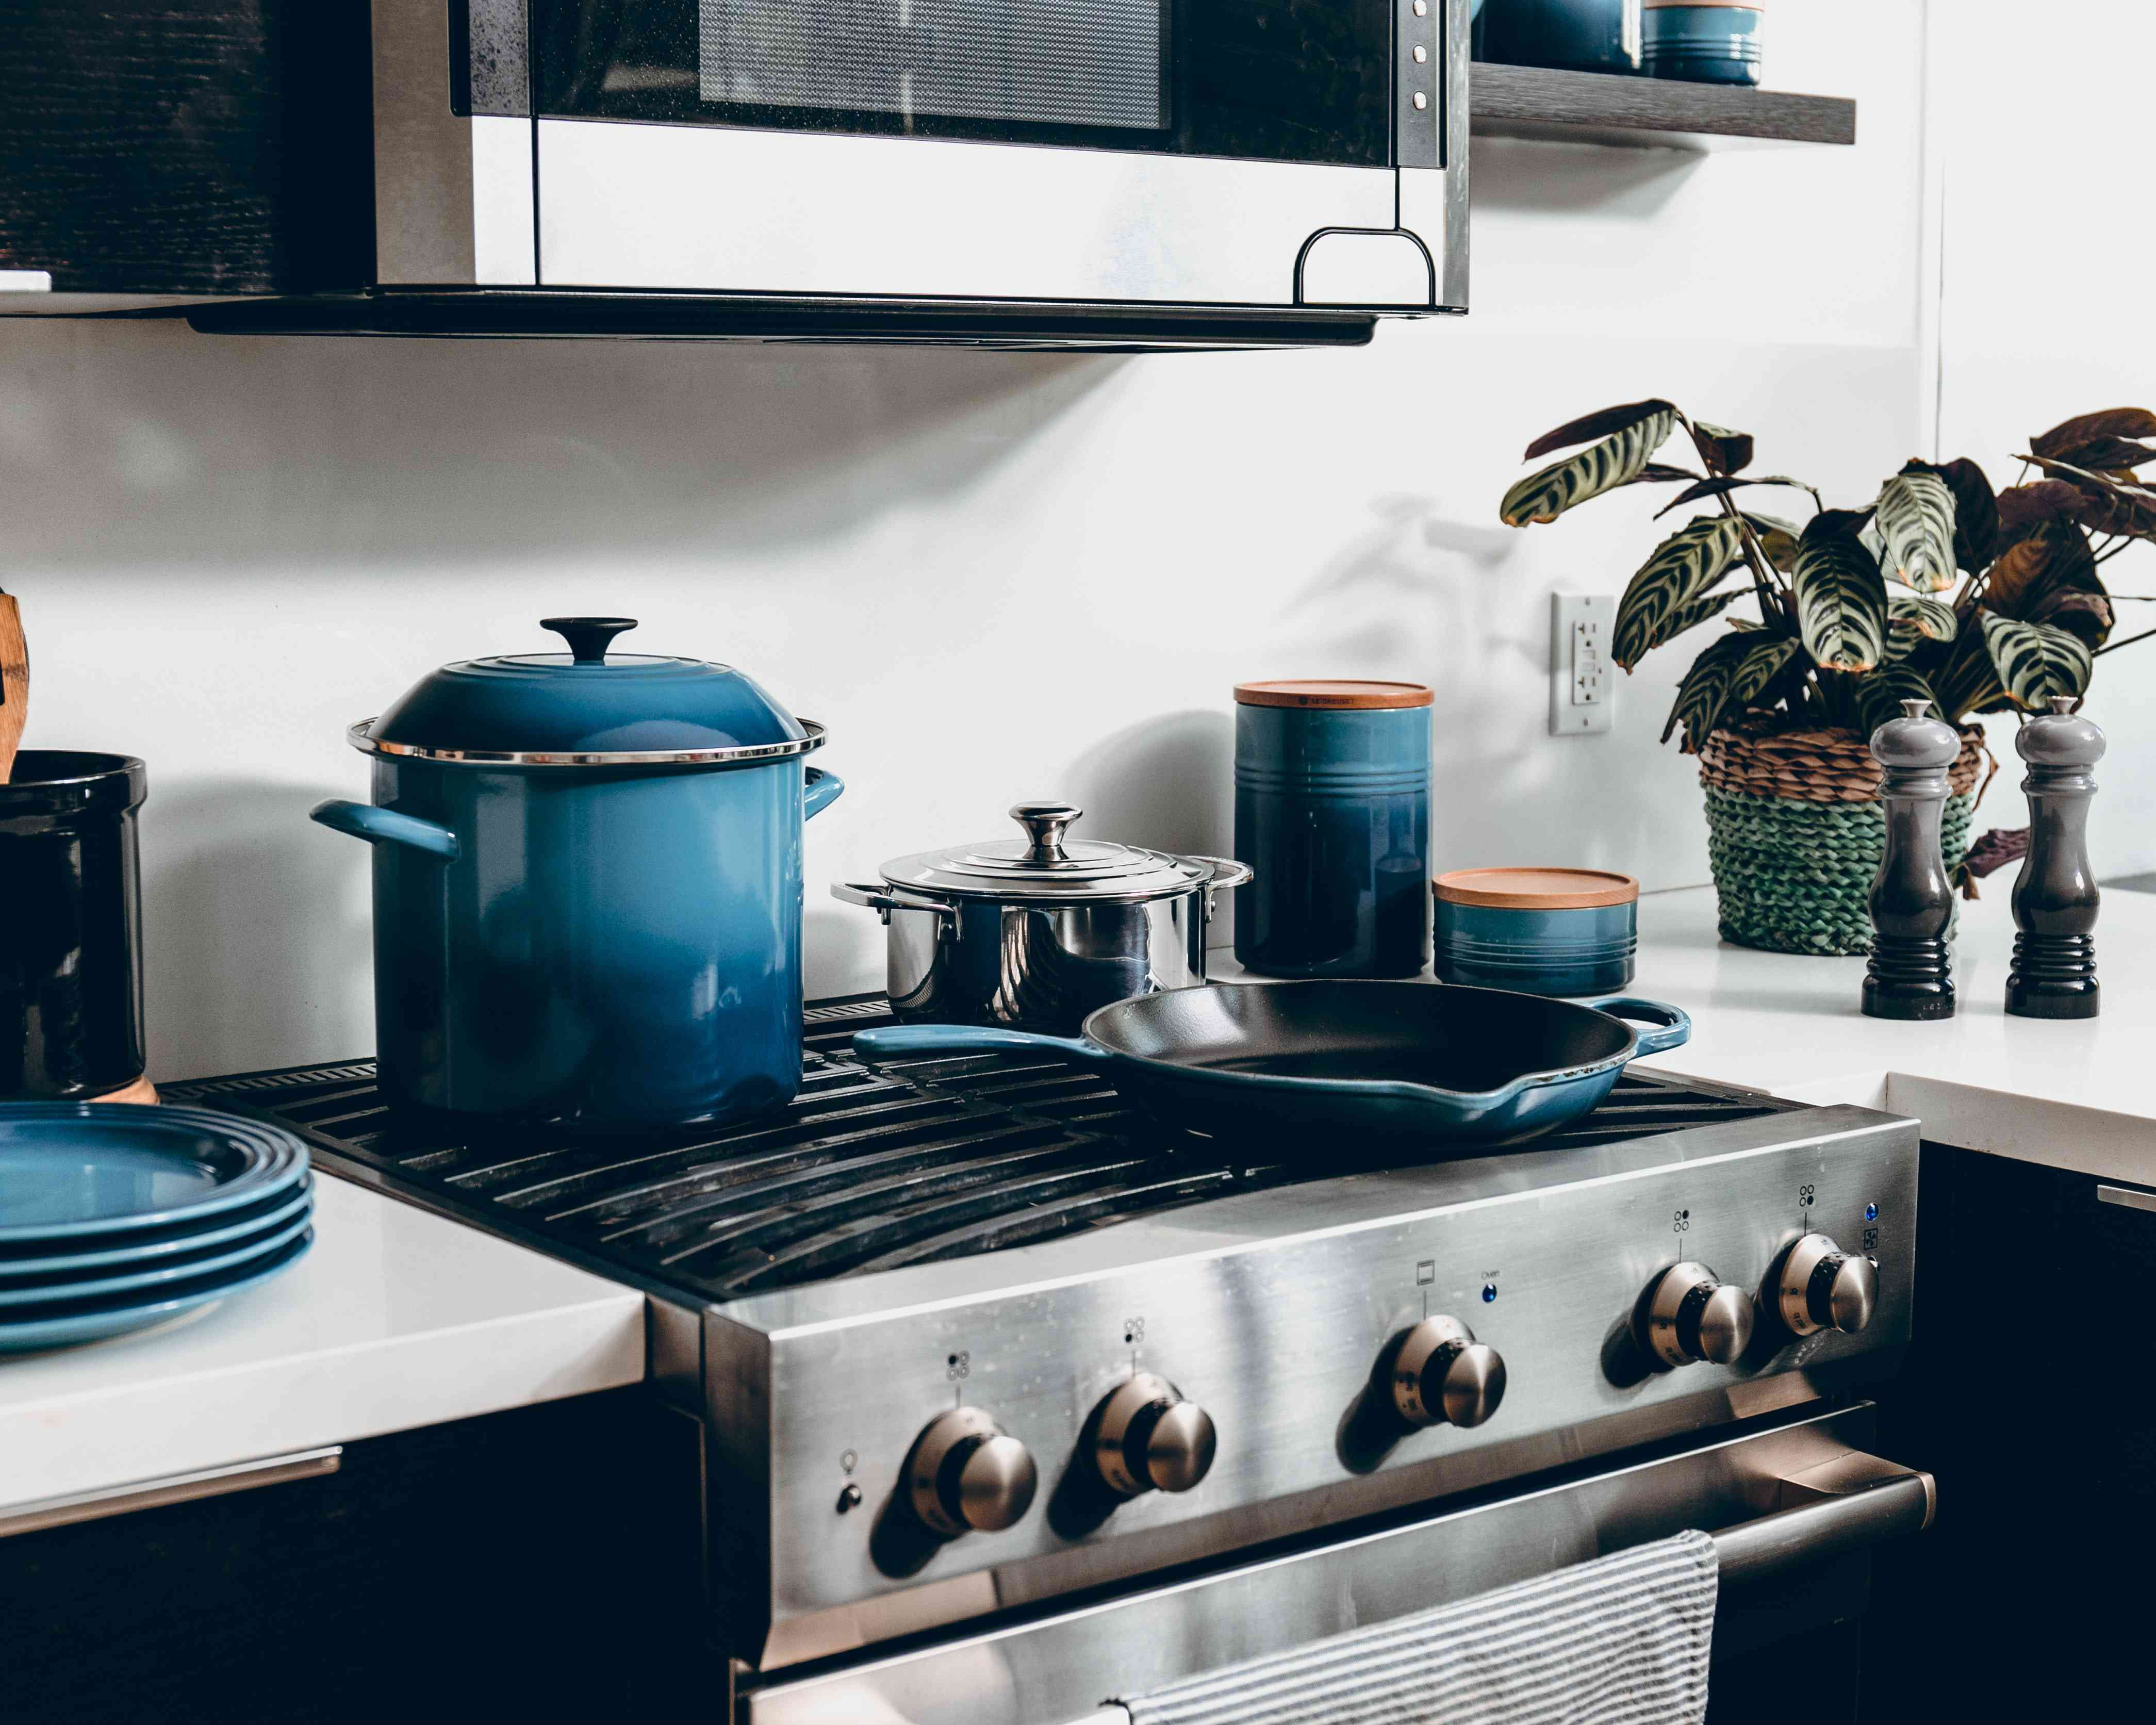 stove with blue pots and accessories in a modern kitchen